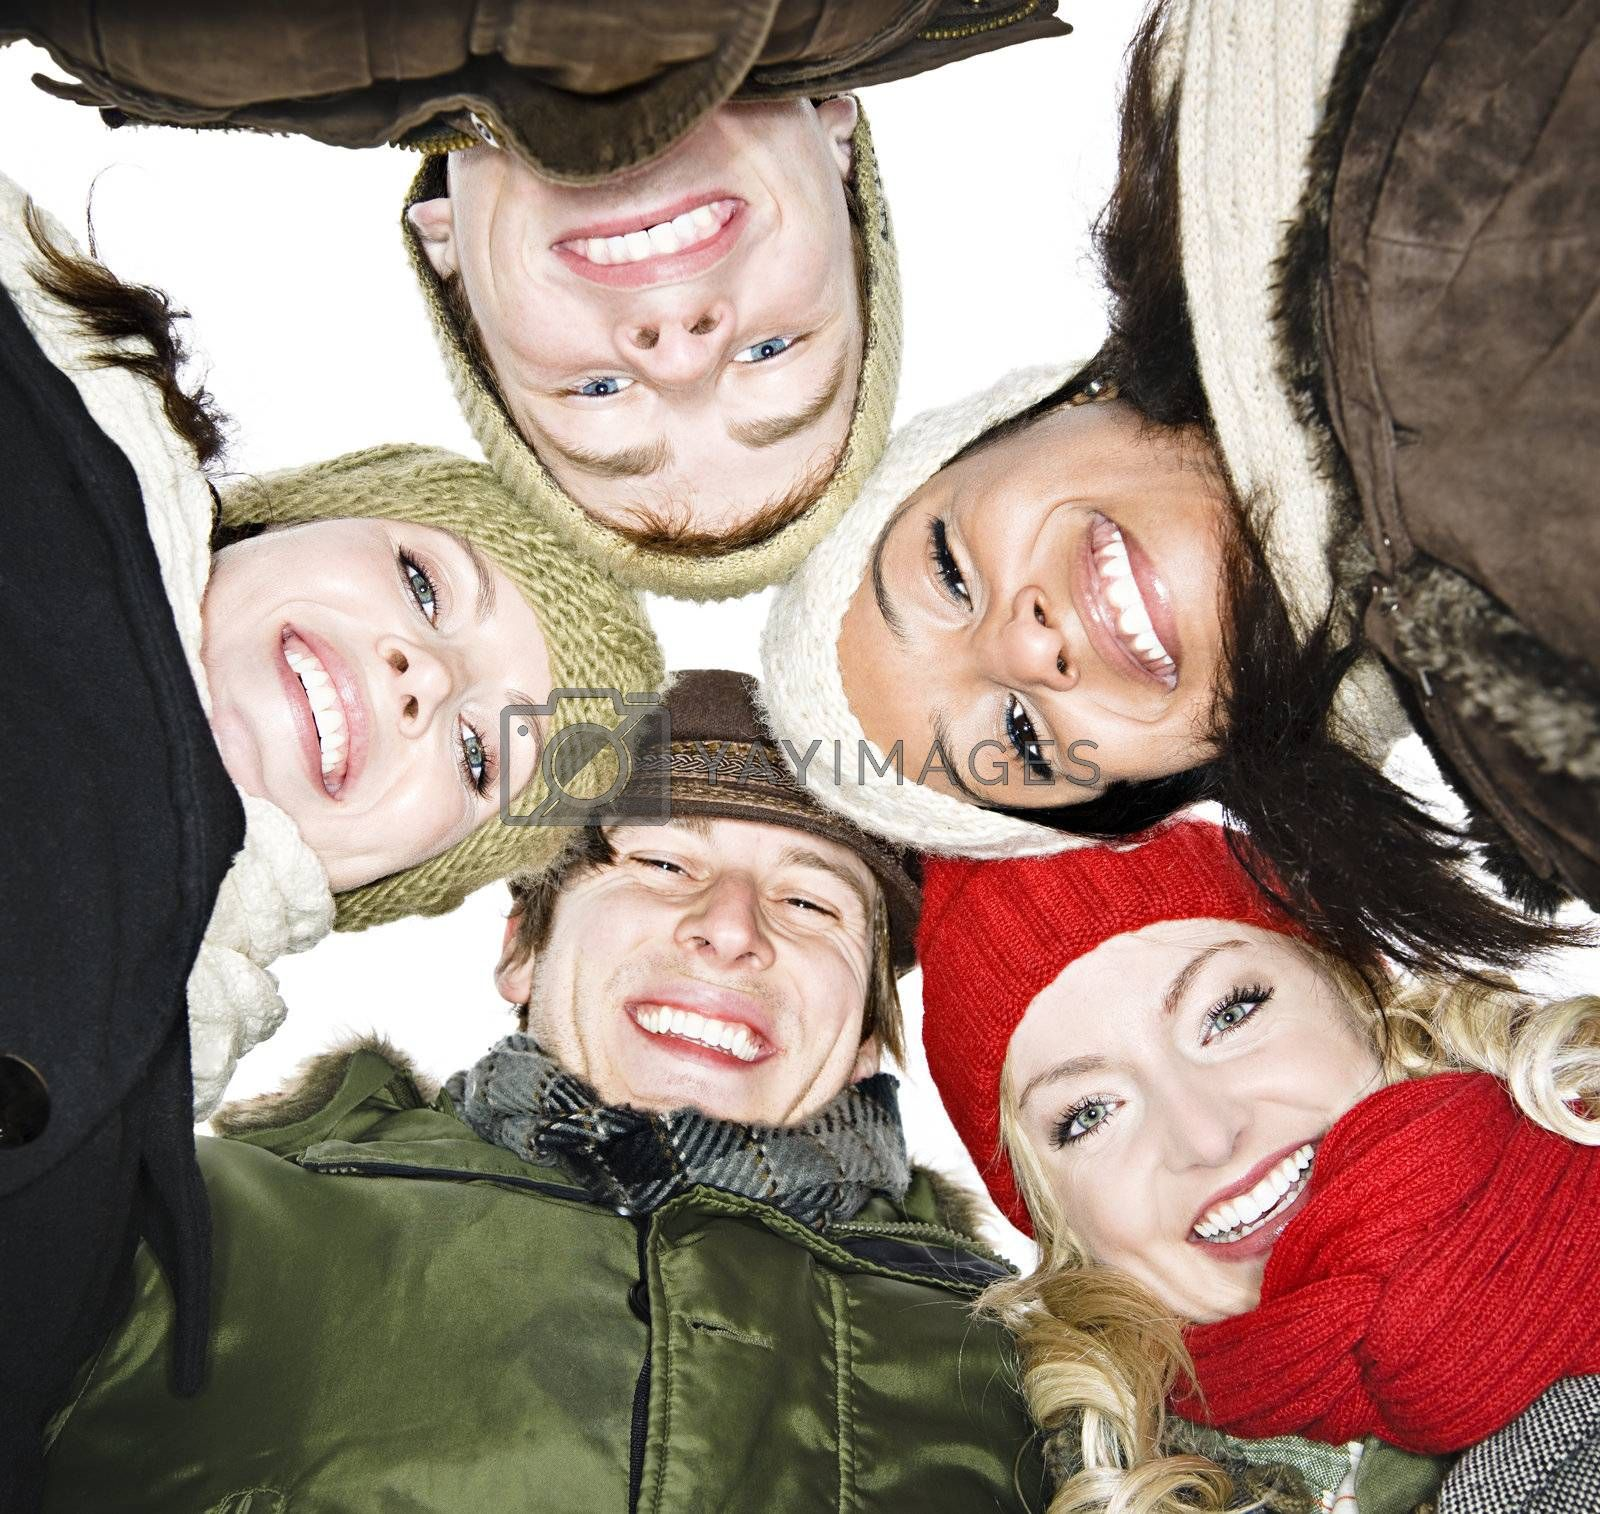 Faces of happy diverse young friends from below